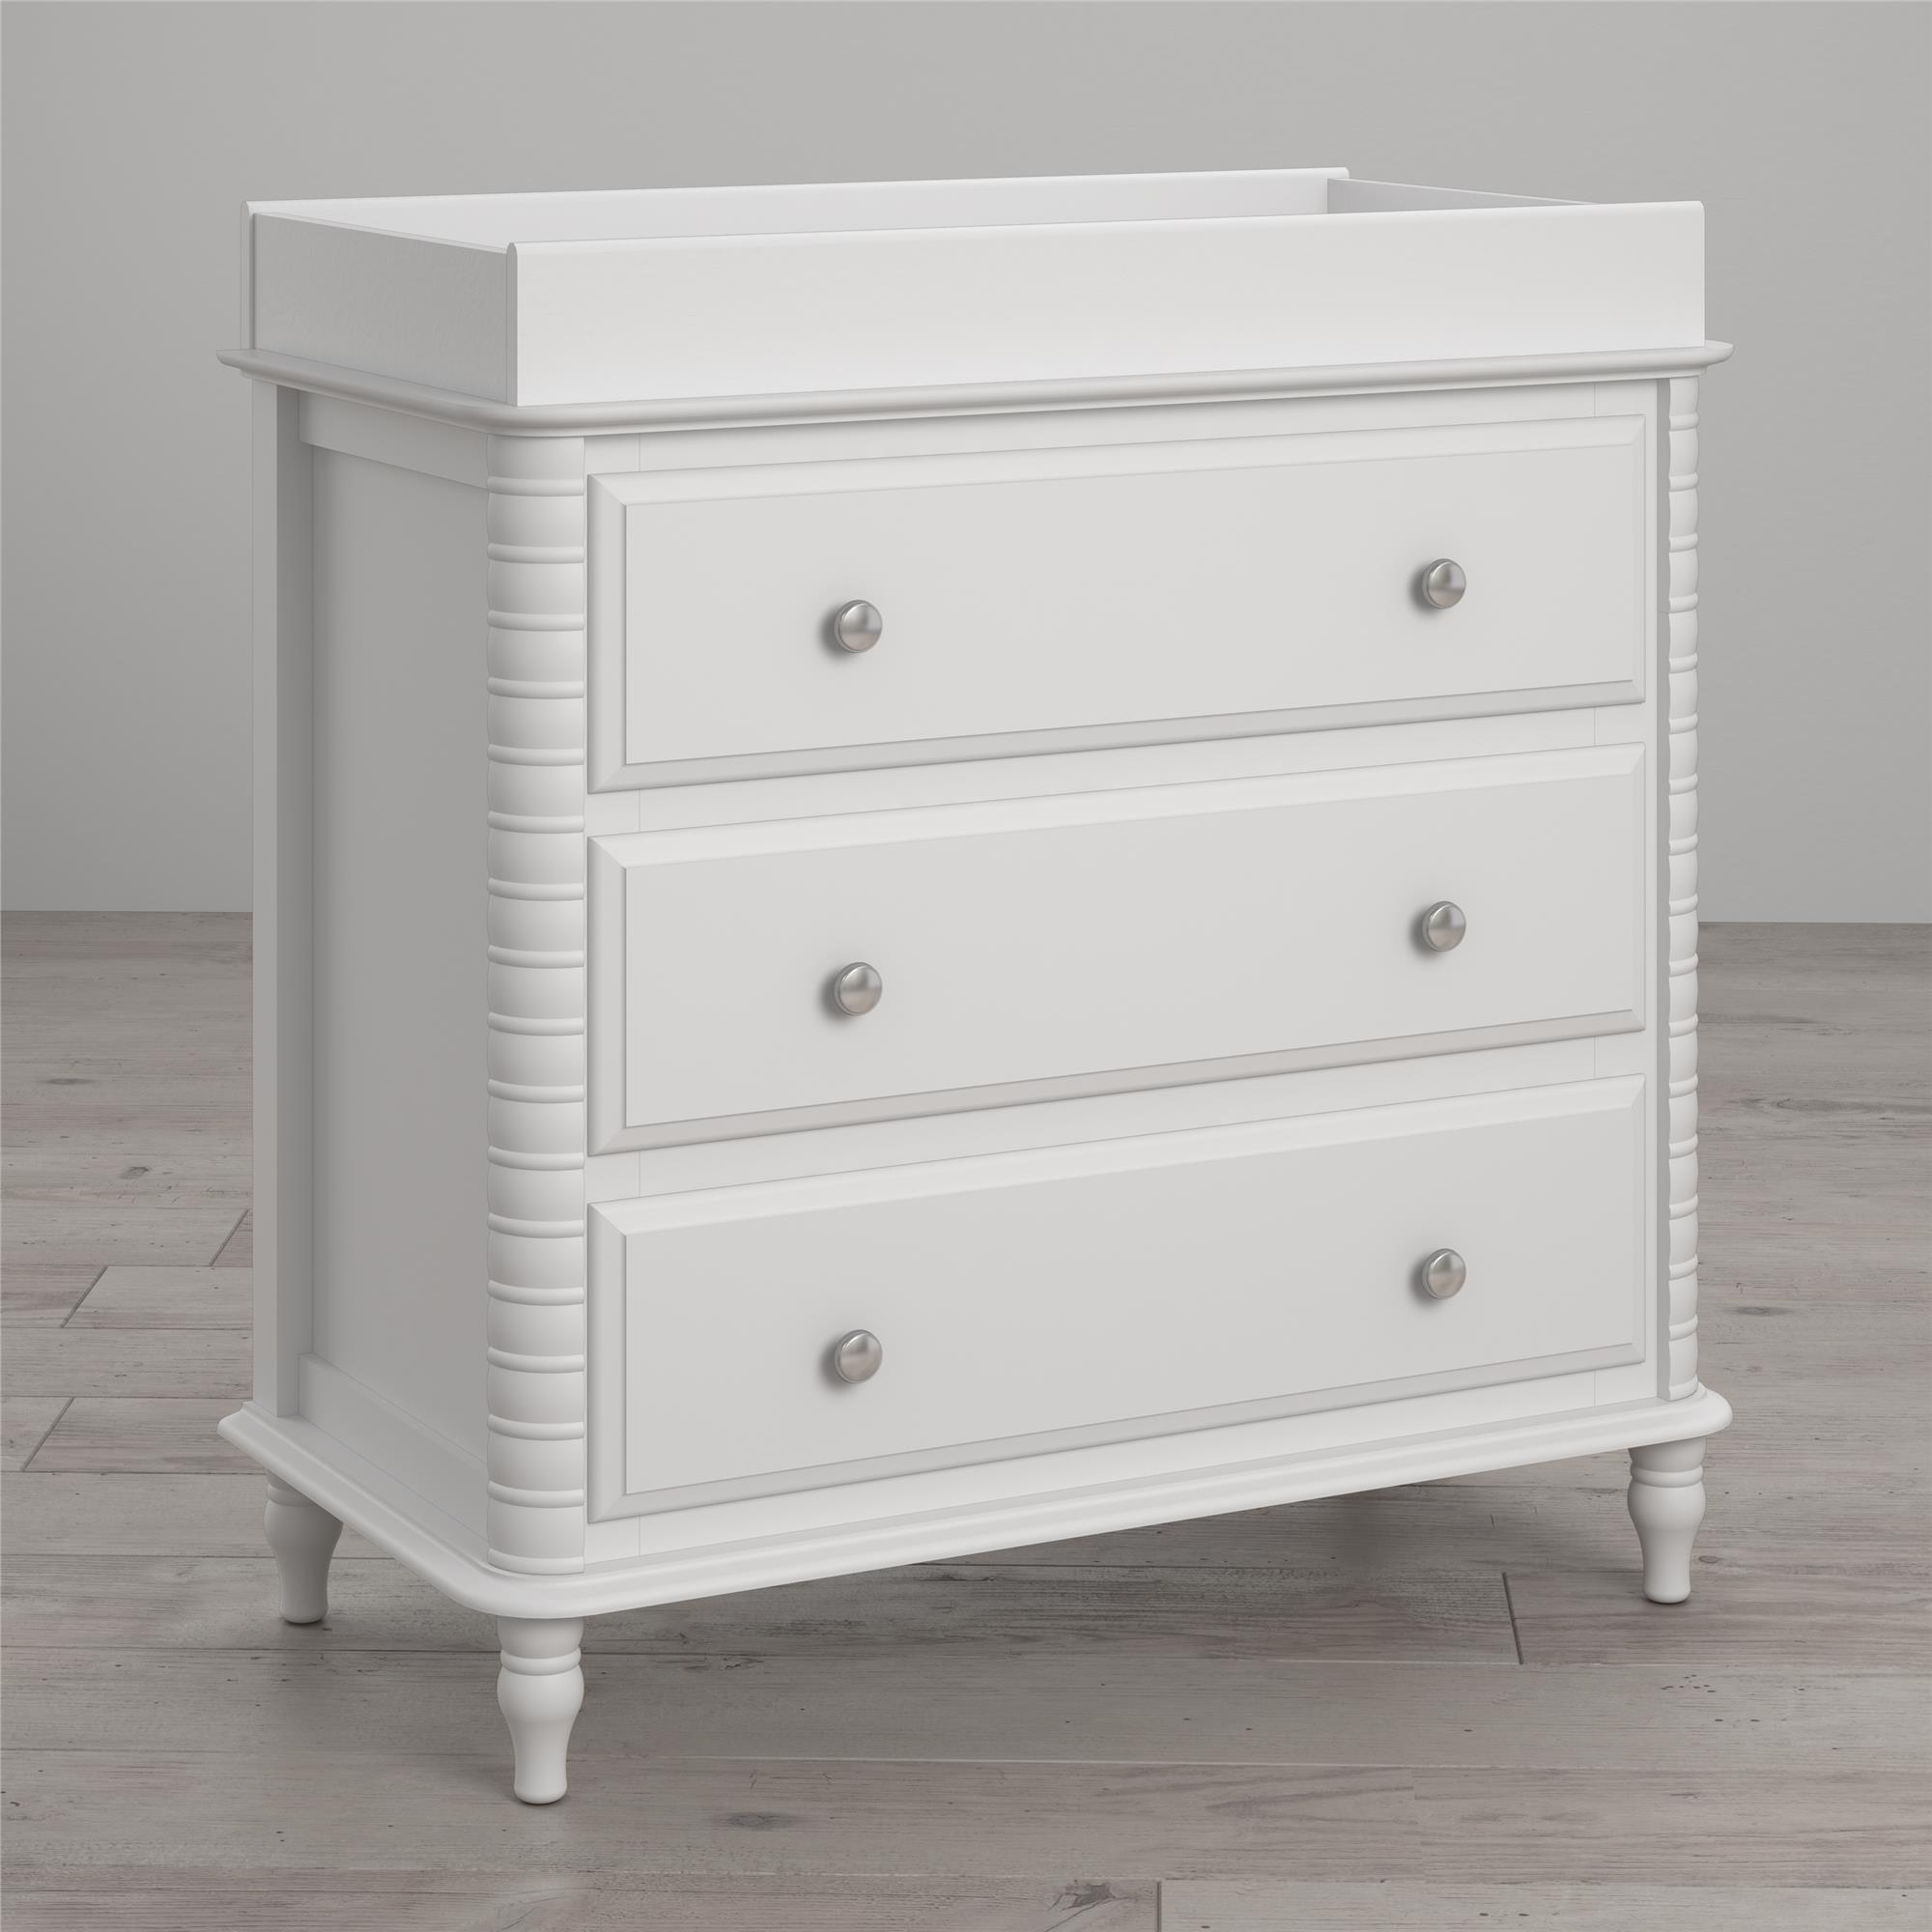 Little Seeds Rowan Valley Linden 3-Drawer Changing Table, Multiple Colors by Little Seeds